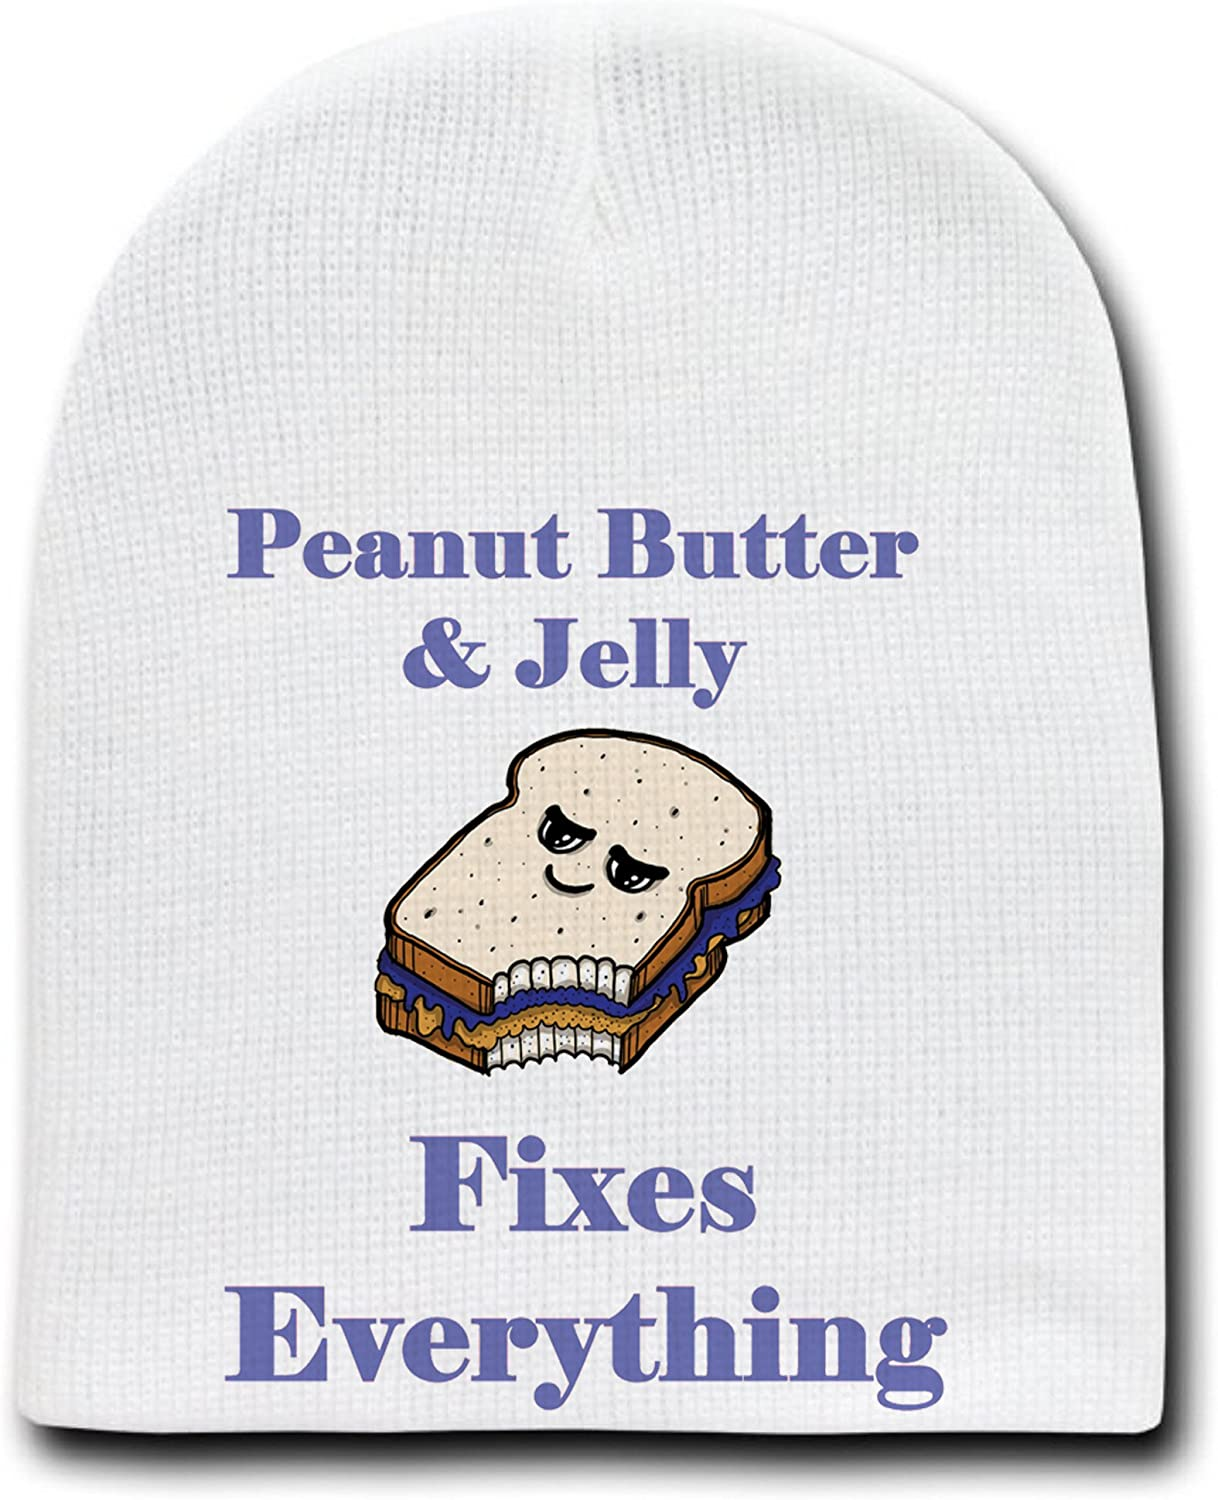 Peanut Butter /& Jelly Fixes Everything Cartoon-White Beanie Skull Cap//Hat